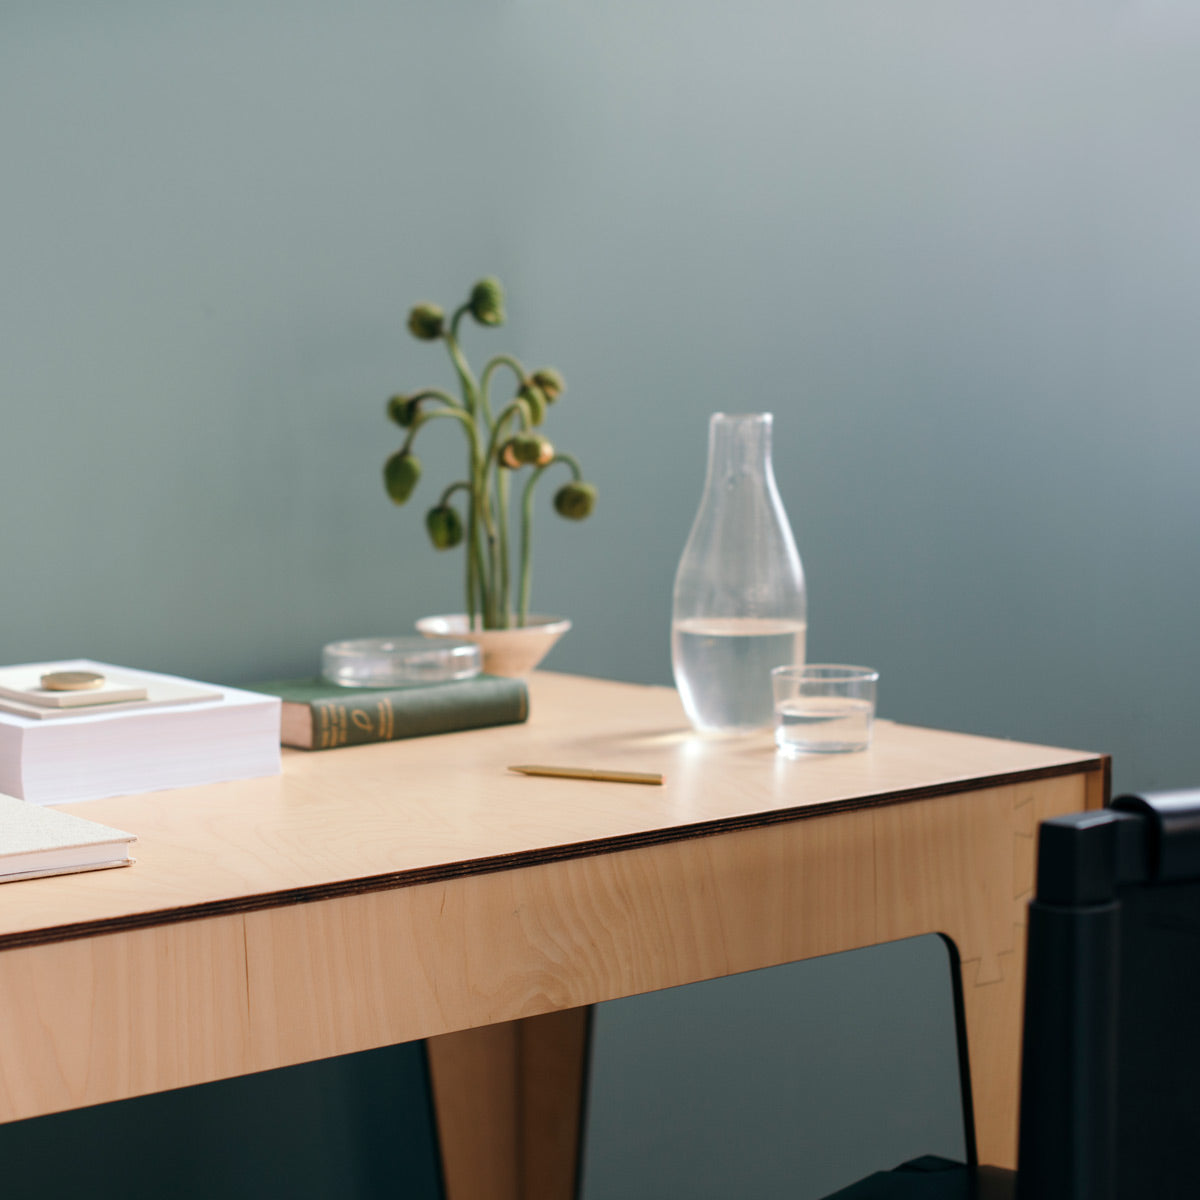 Modern Scandinavian Dining Furniture Melbourne Tavolone Dining Table as Desk